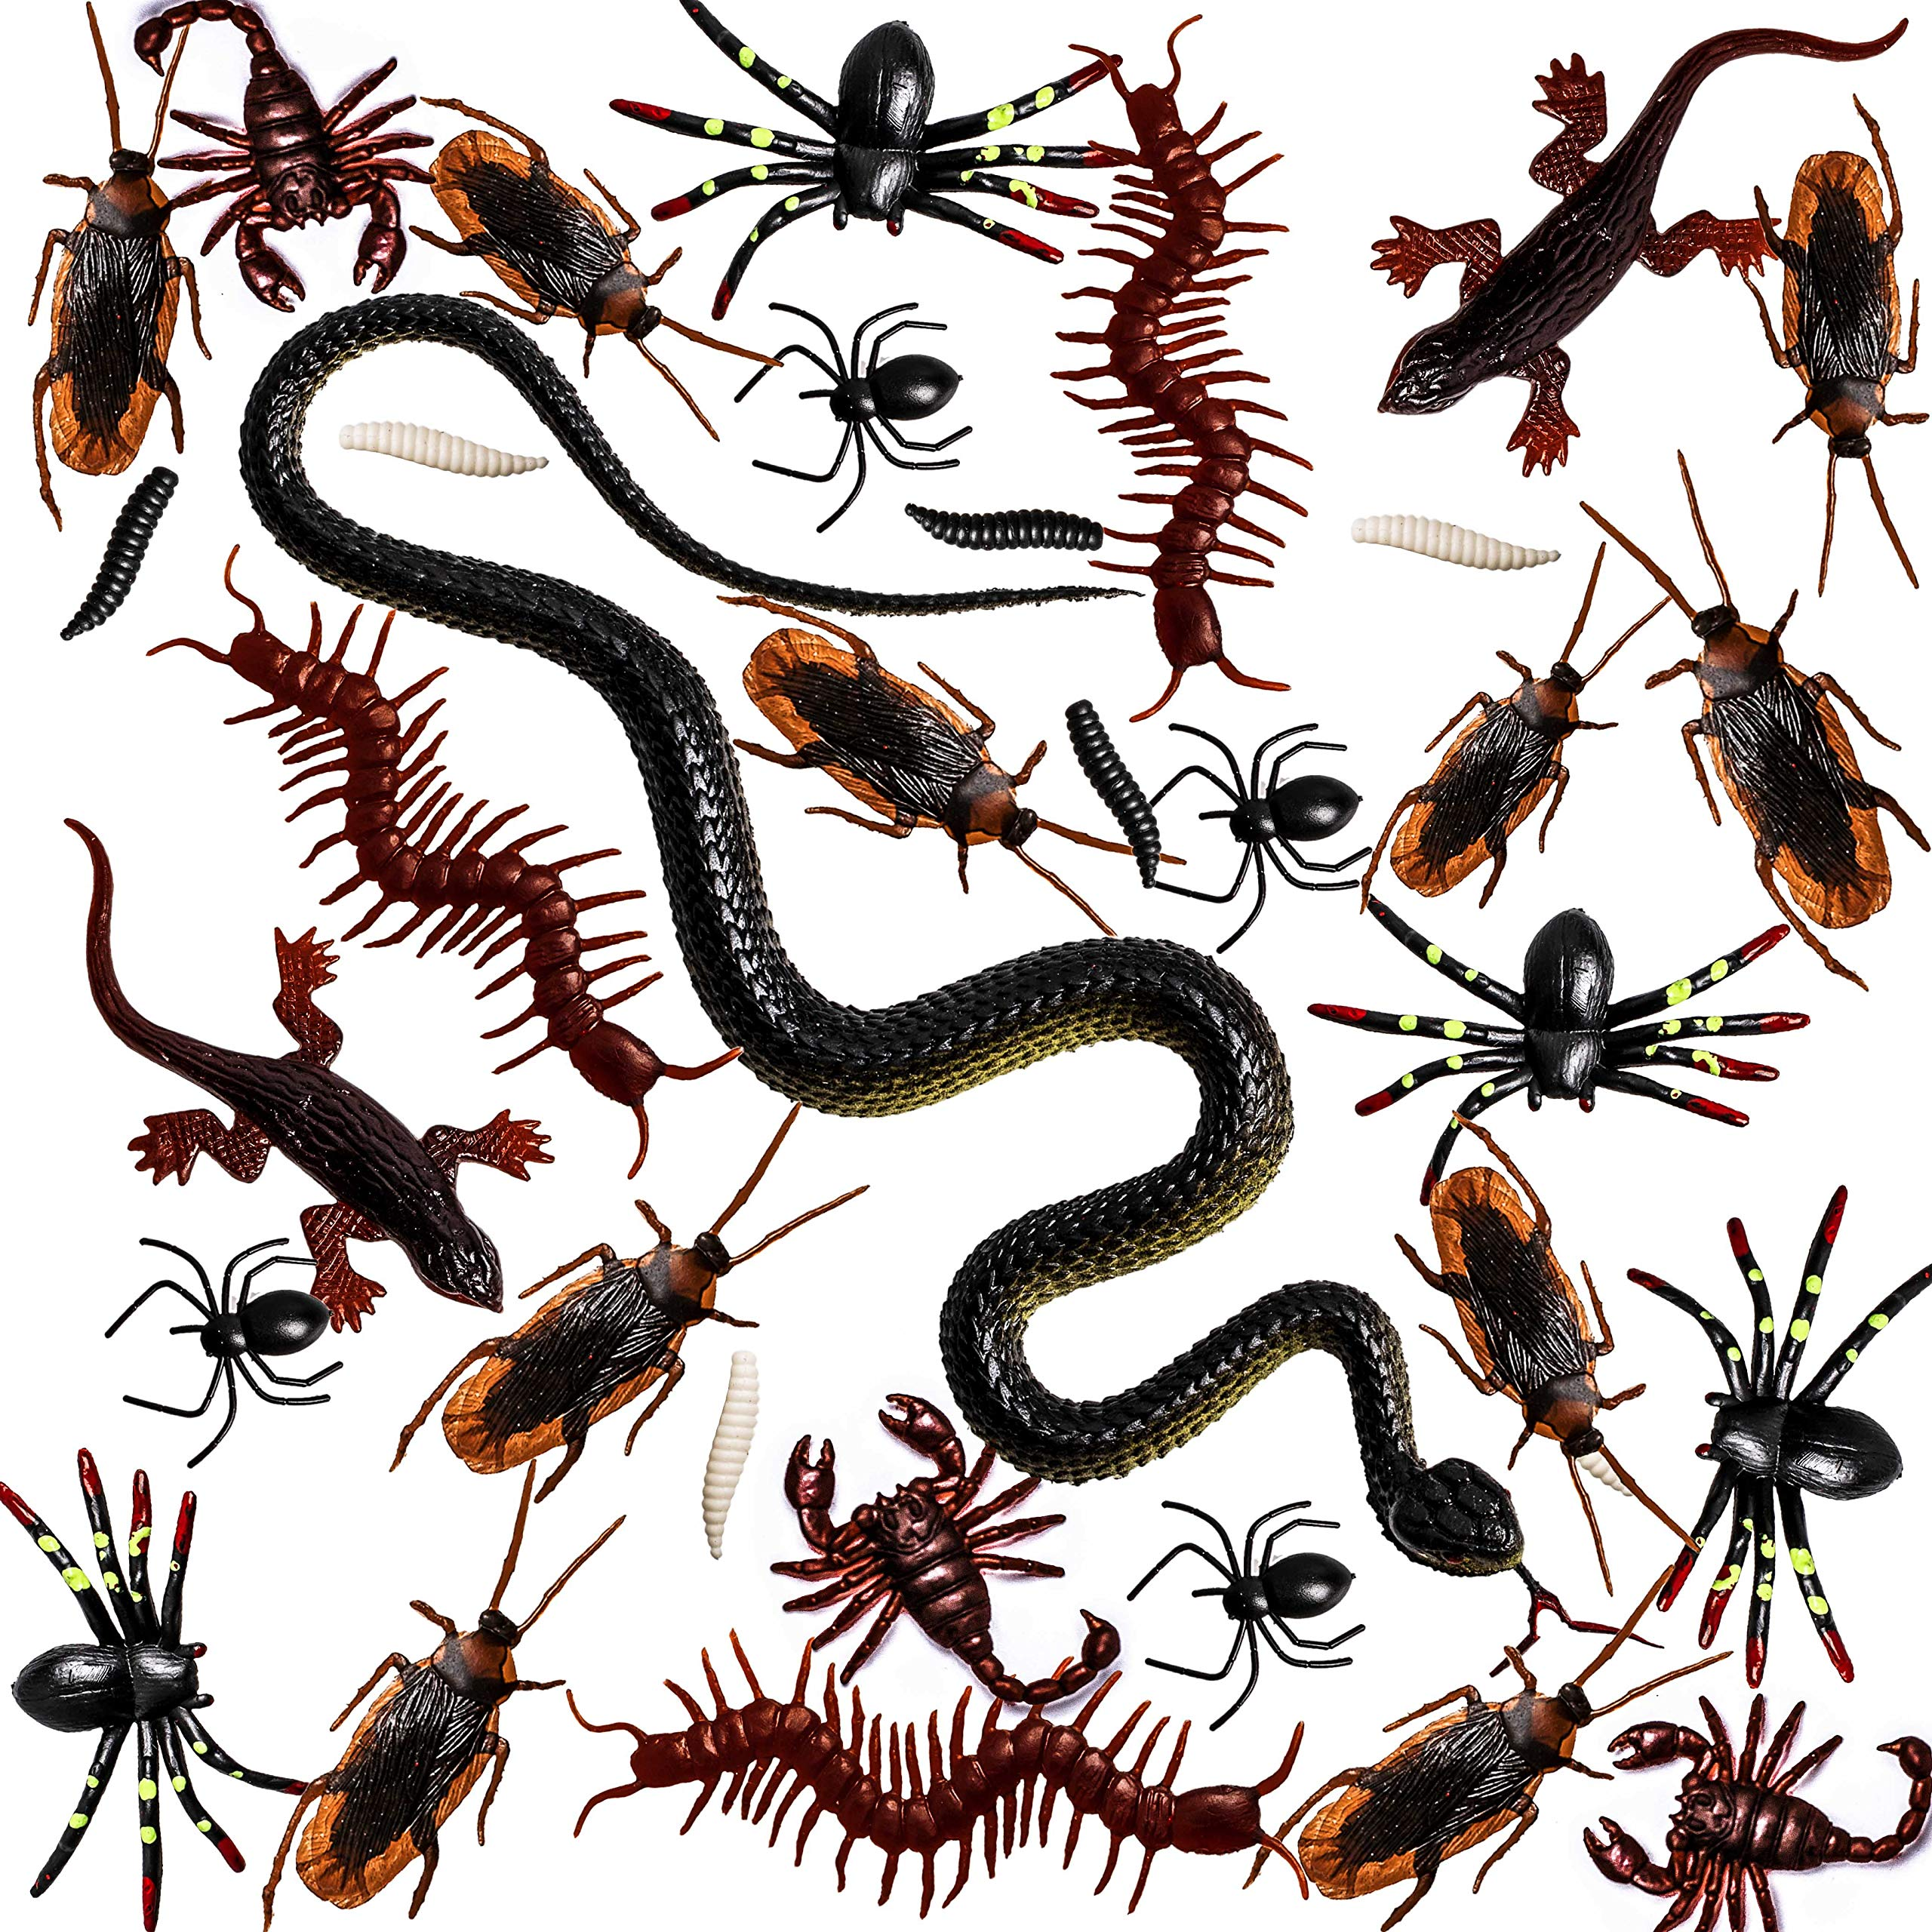 Whaline 148 Pieces Plastic Bugs Fake Snake Cockroaches Spiders Worms Scorpions and Gecko for Halloween Party Favors and Decoration